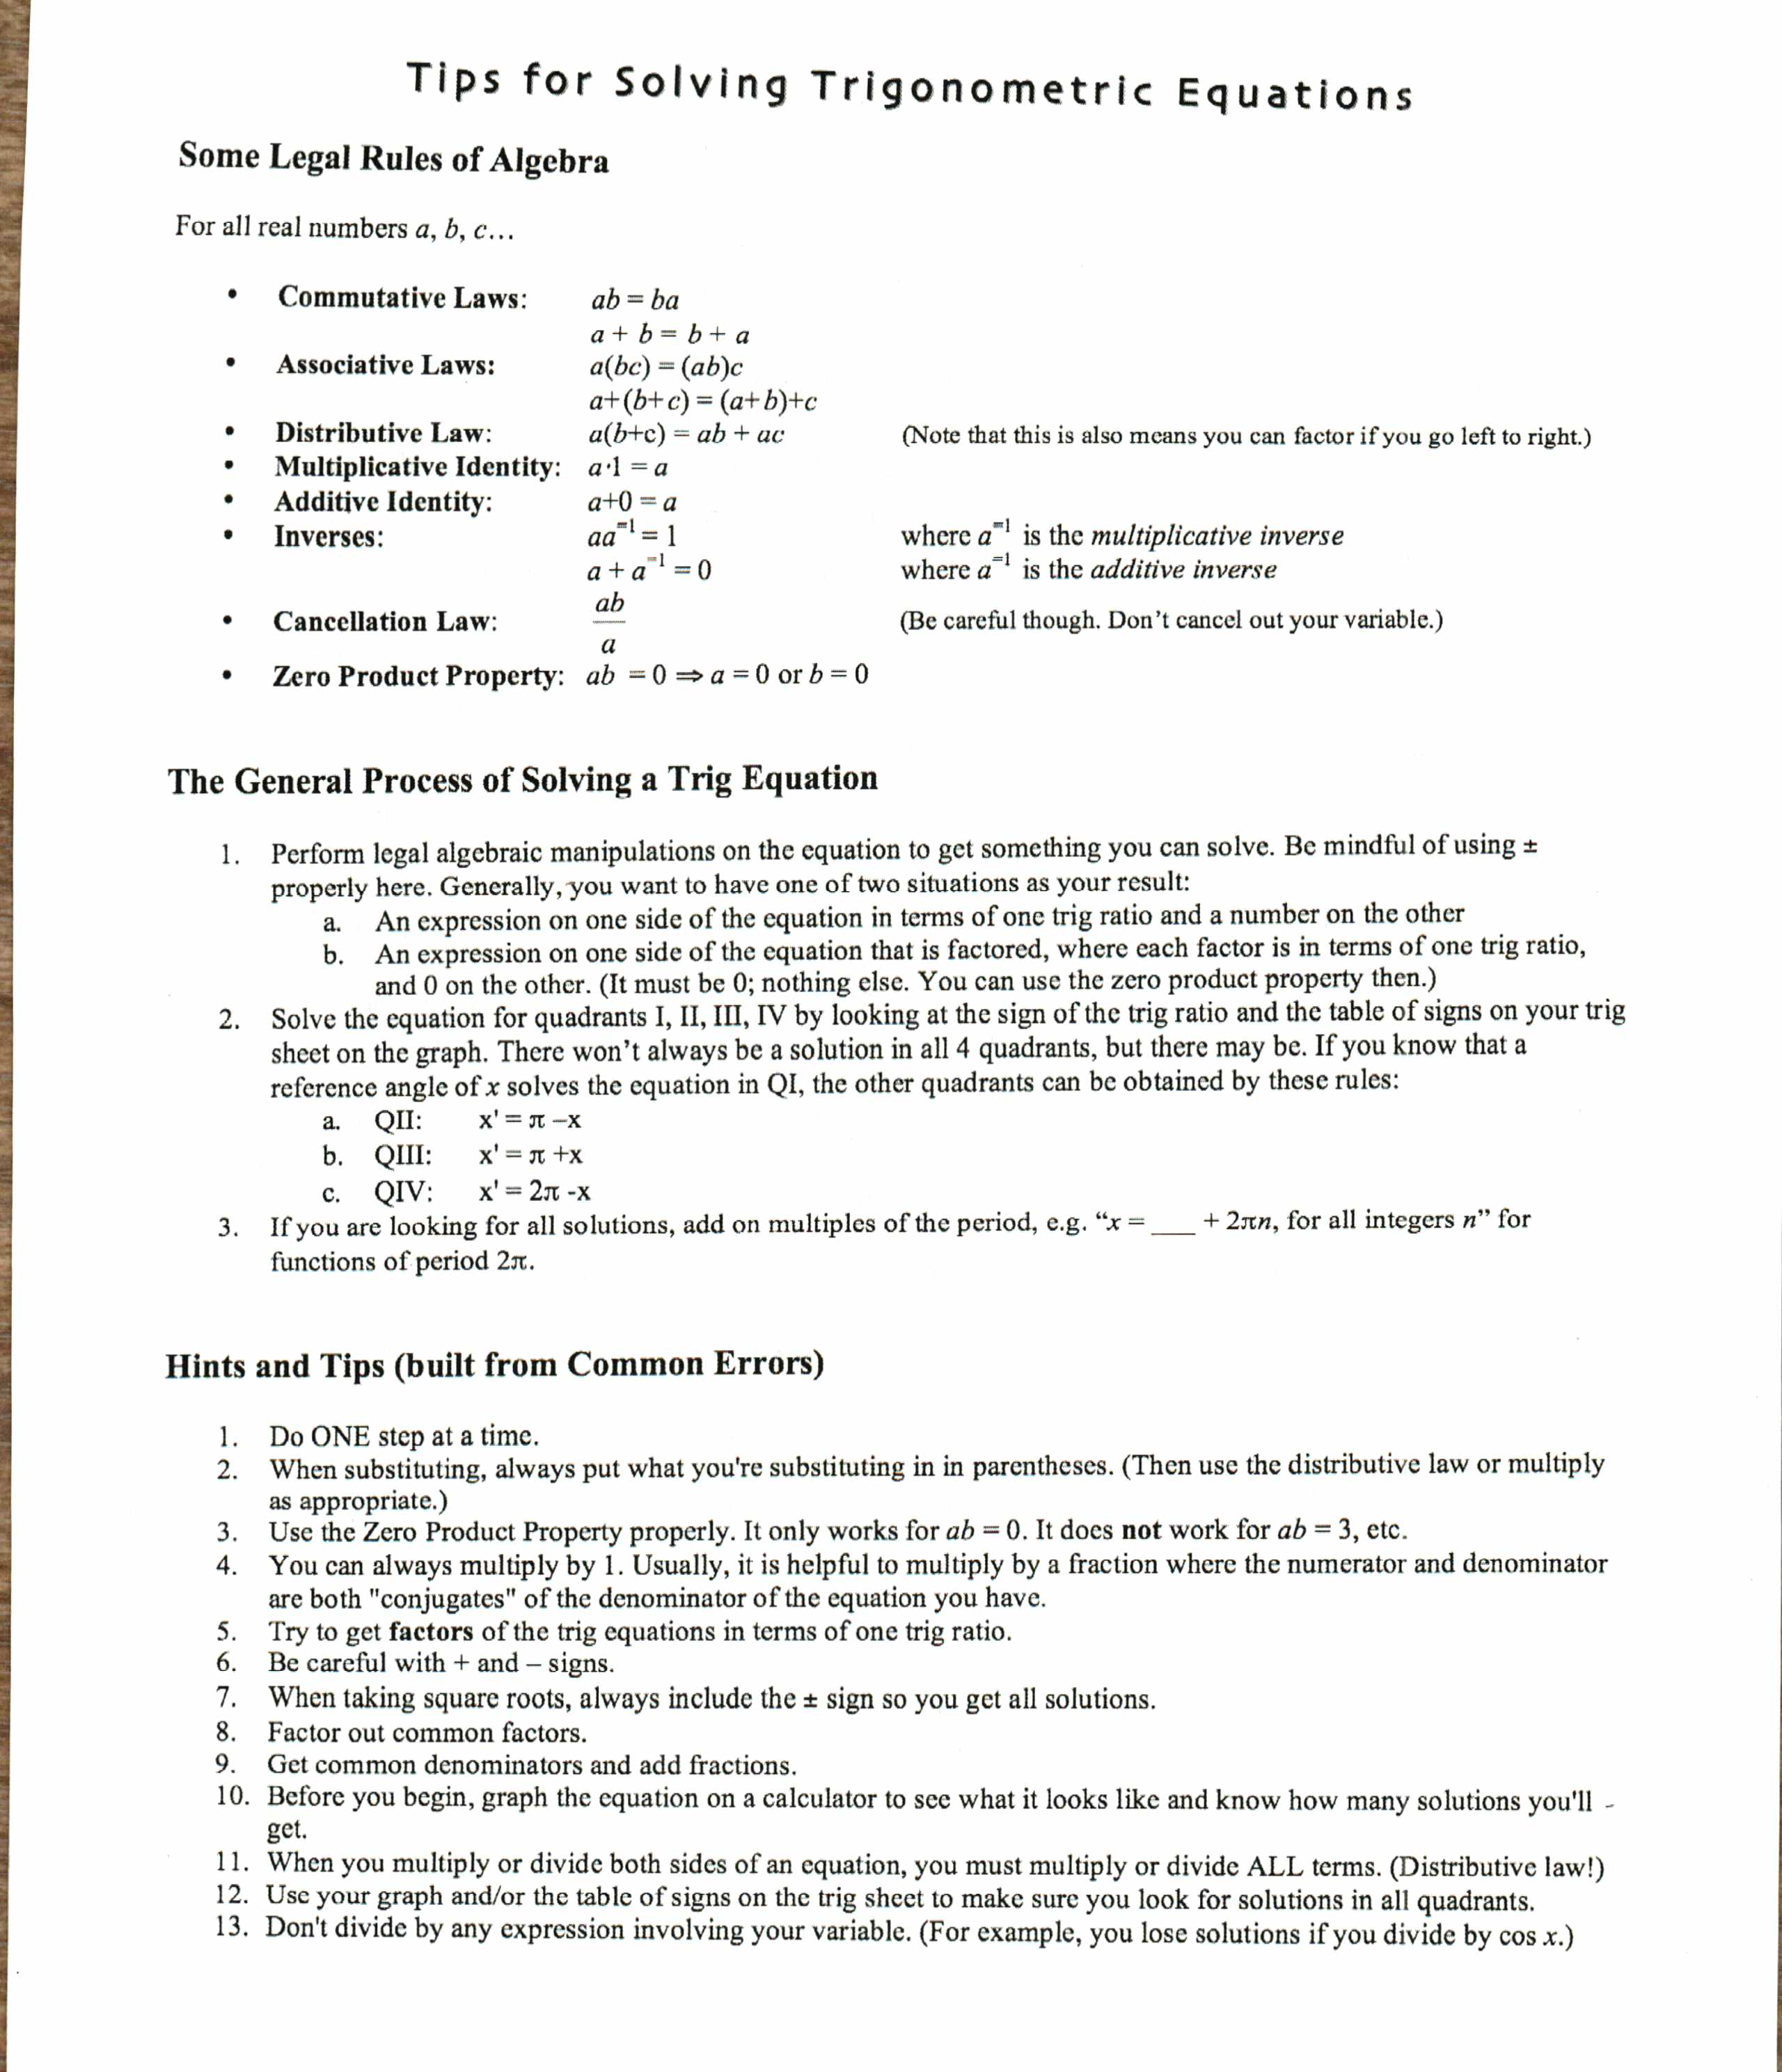 614 C block – Simplifying Trig Identities Worksheet